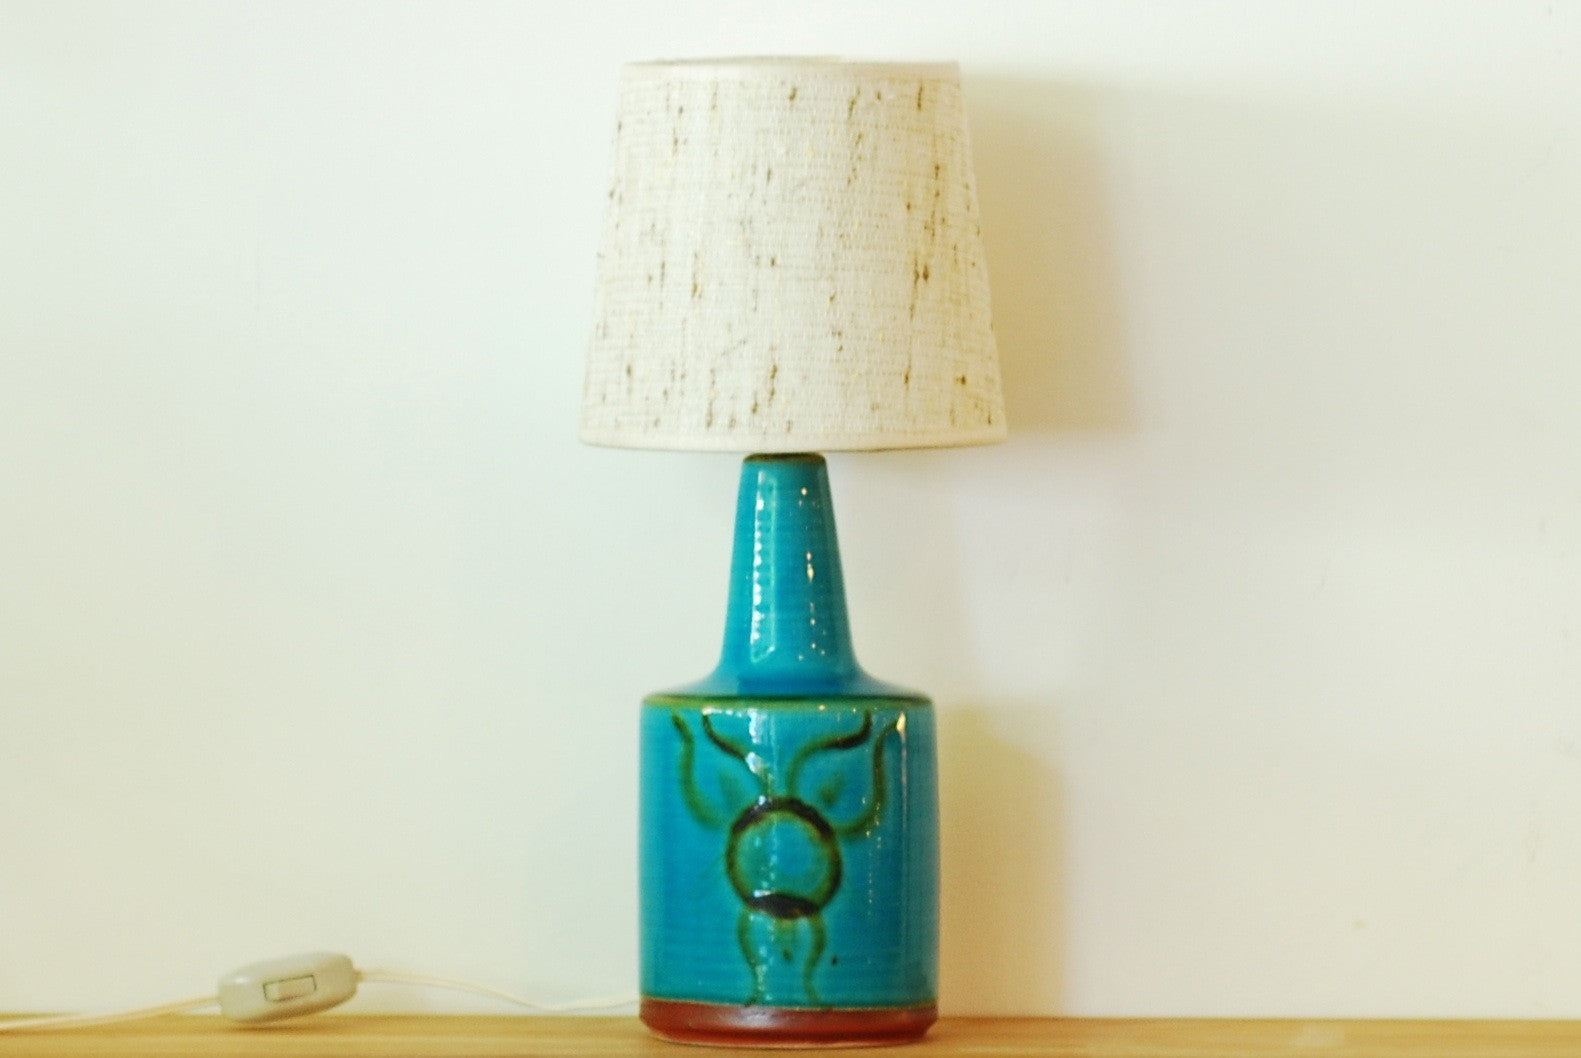 Table lamp by Einar Johansen for Søholm